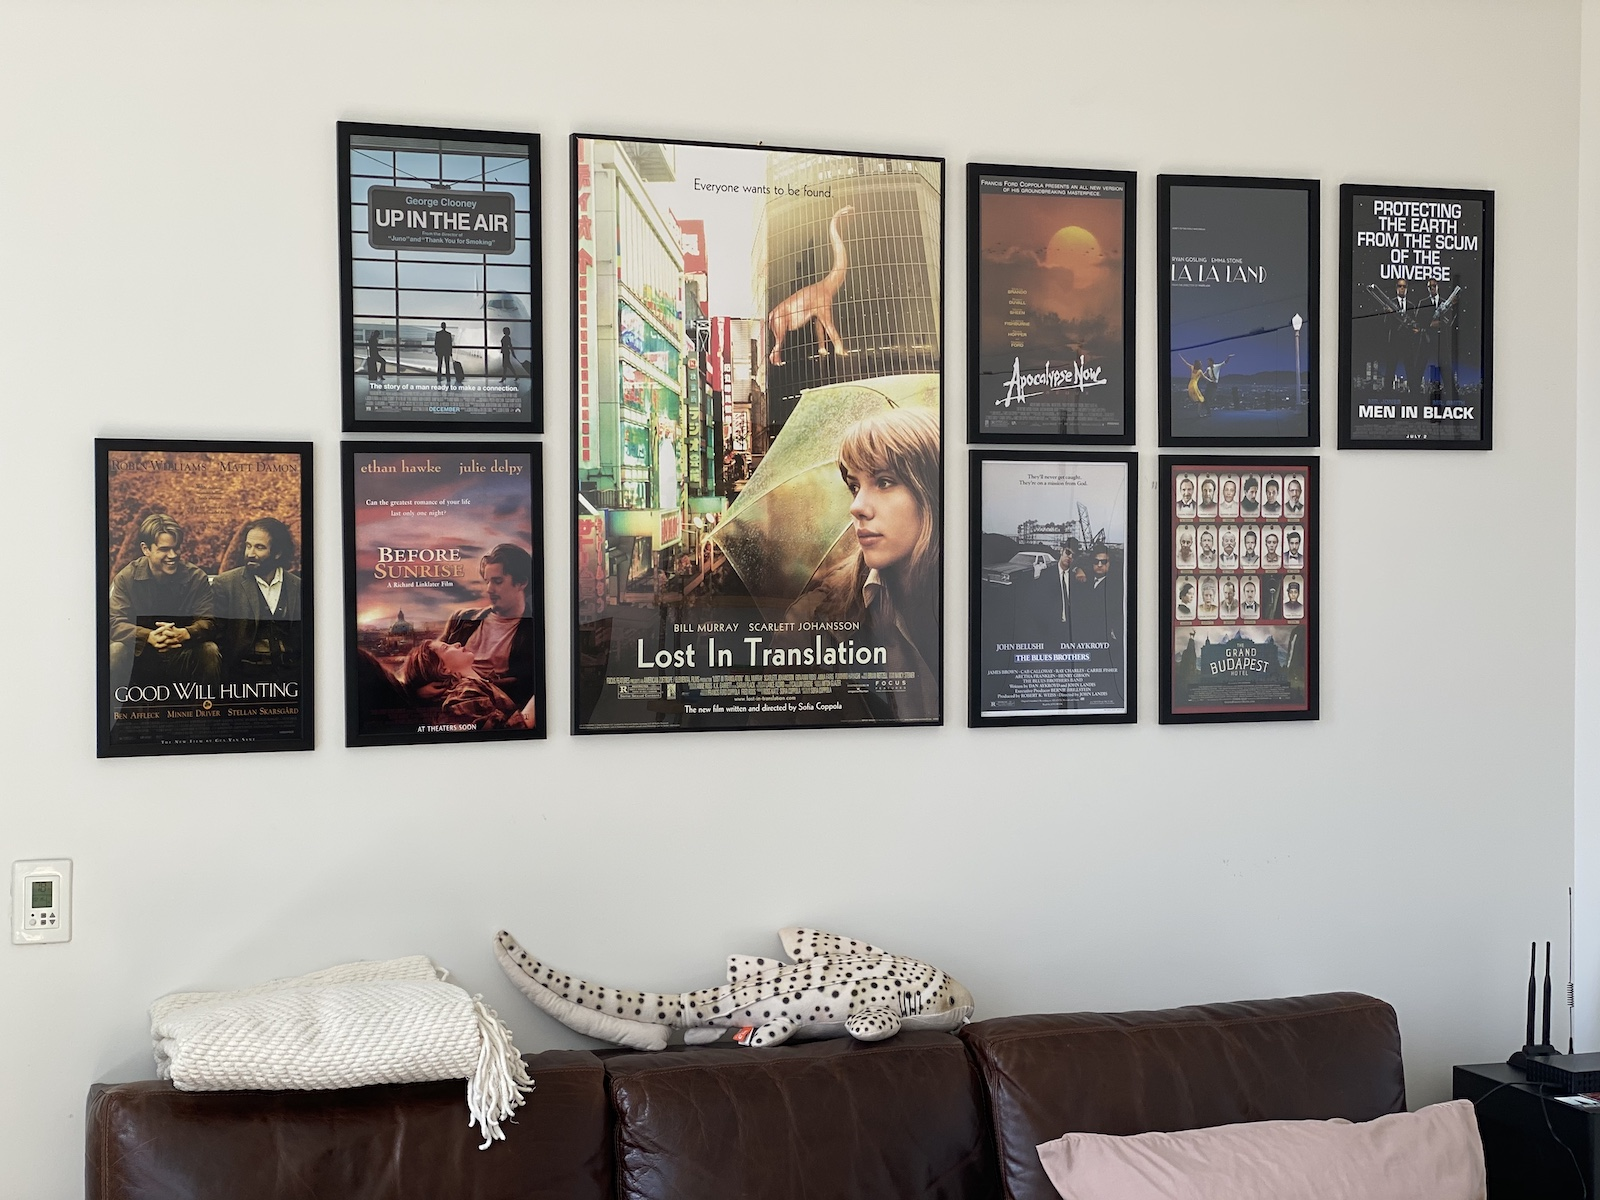 The wall behind my couch with 9 movie posters: Good Will Hunting, Before Sunrise, Up in the Air, Lost in Translation, Apocalypse Now, The Blues Brothers, Grand Budapest Hotel, La La Land, and Men in Black.